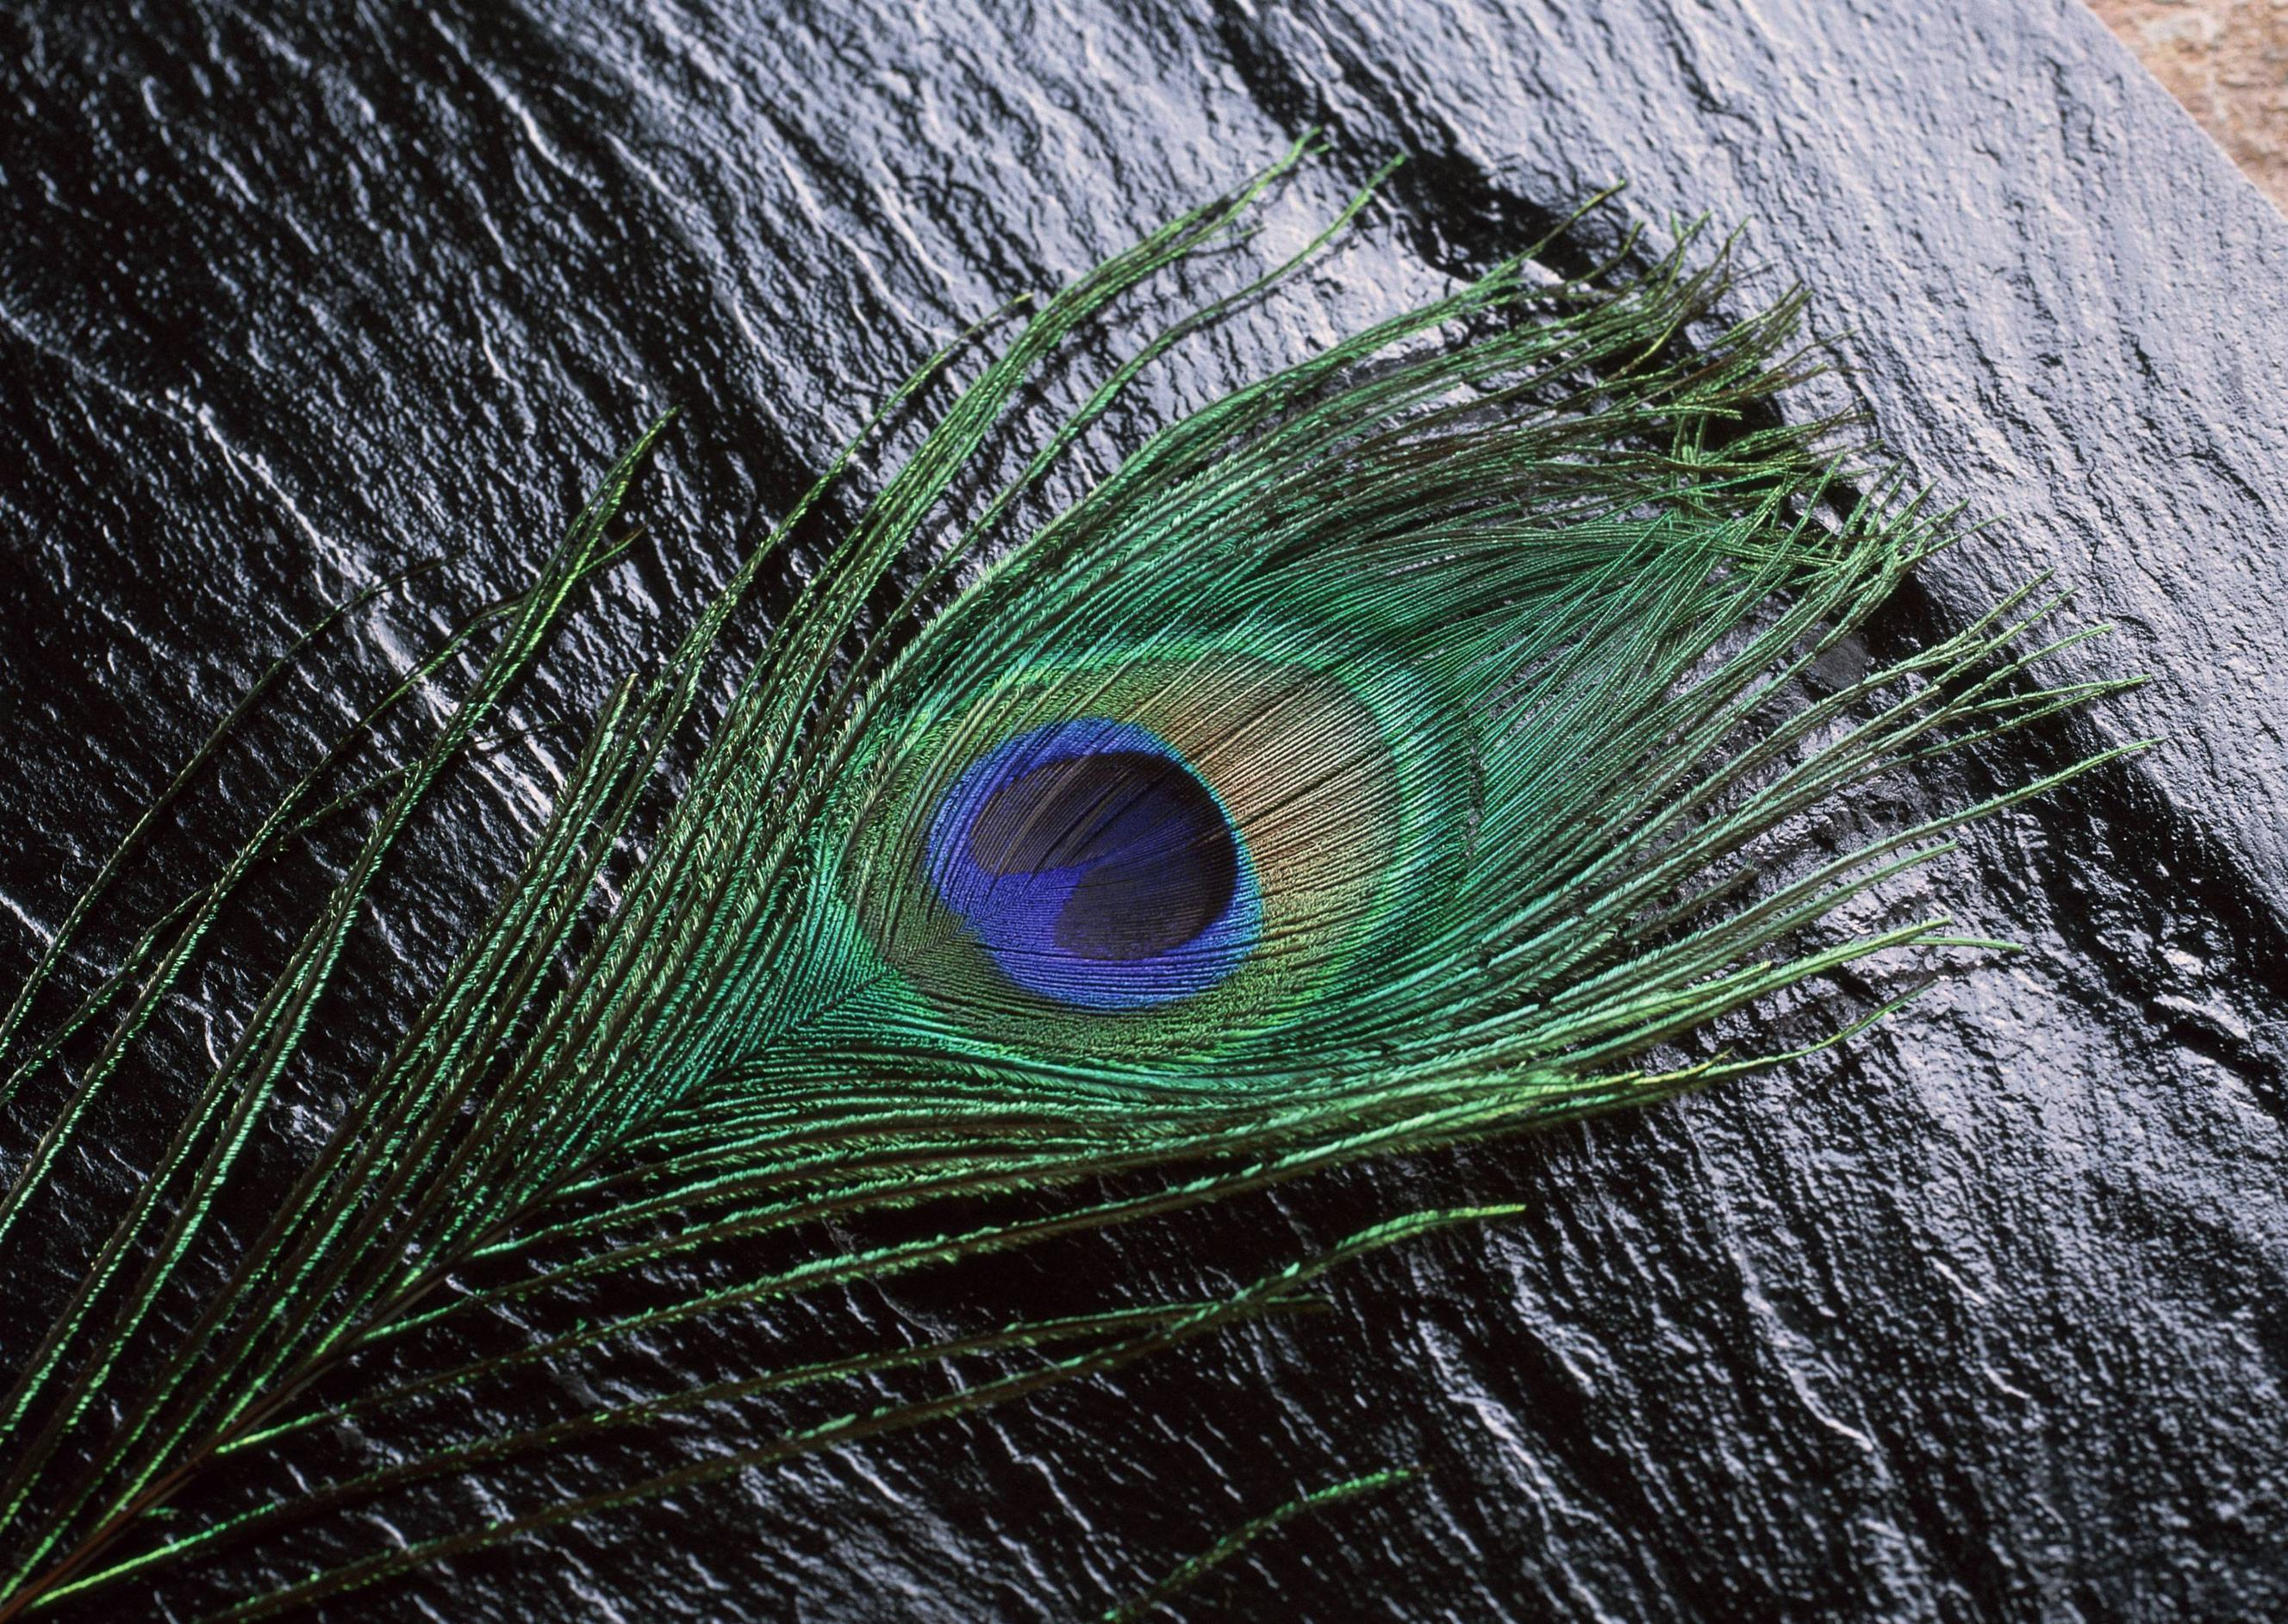 Mor Pankh Hd Wallpaper: Wallpapers Of Peacock Feathers HD 2015